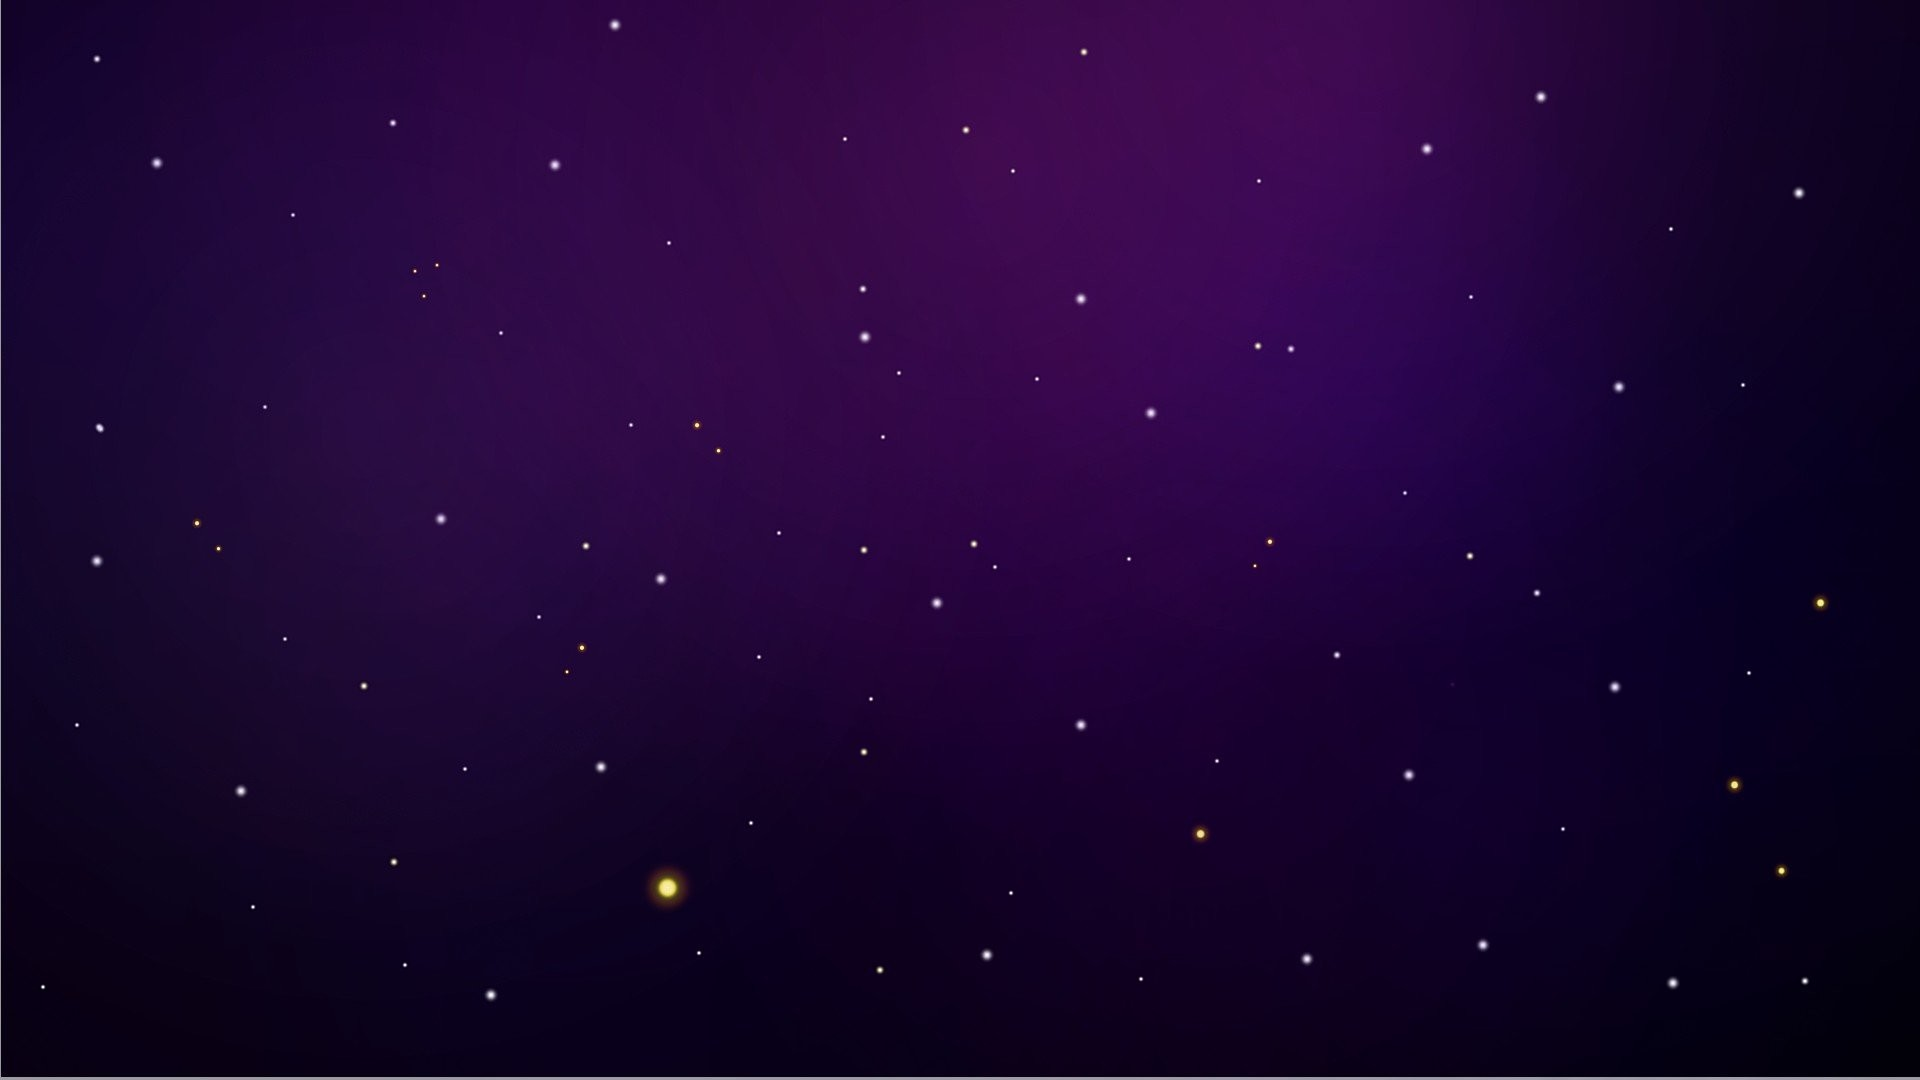 purple-art-simply-digital-outer-space-minimalistic-wallpaper-wallpapers.jpg  (1920×1080)   Crit2017-4   Pinterest   Ideas, Outer space and Nebula  wallpaper